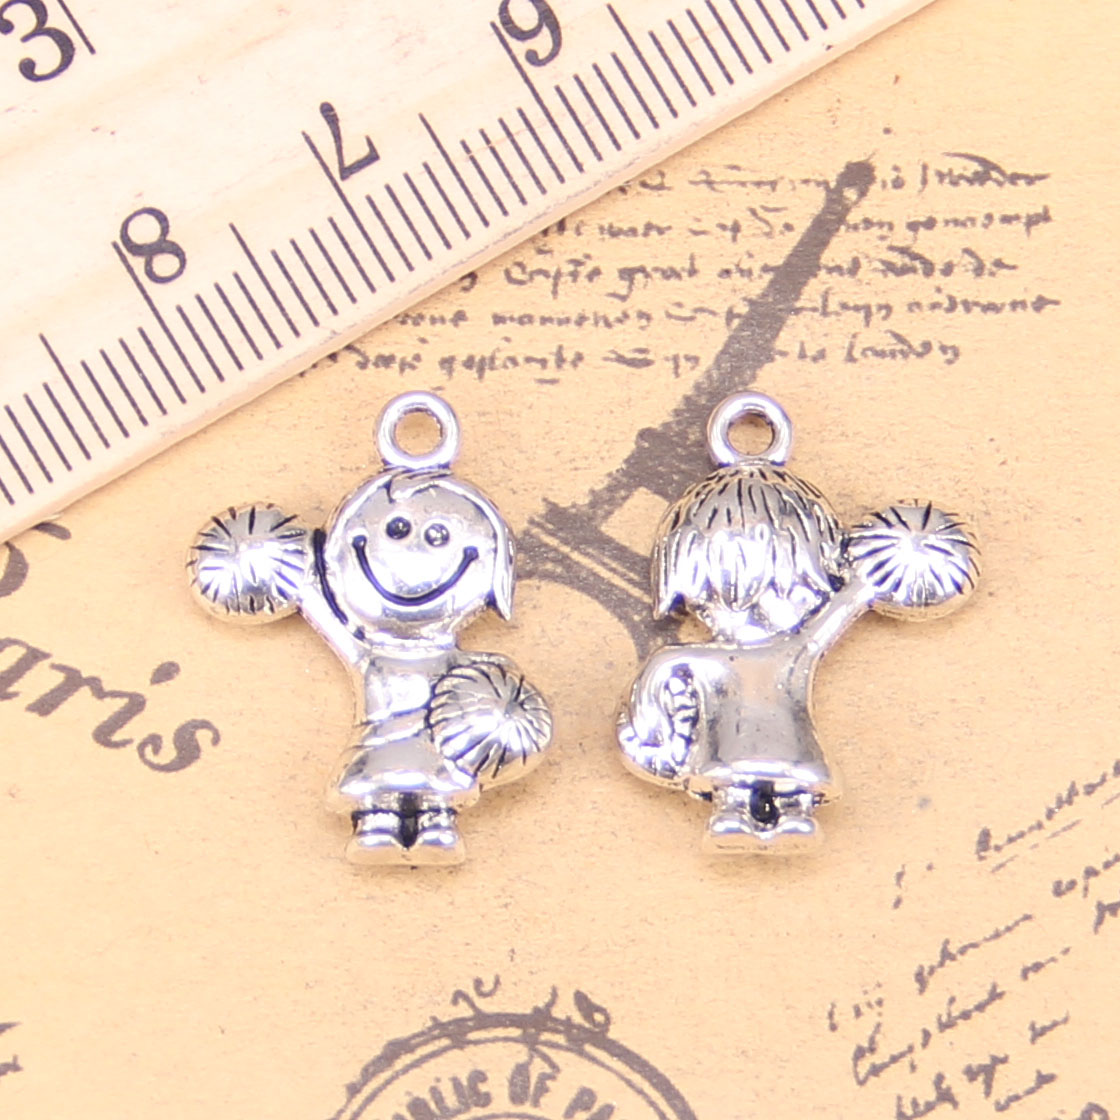 8 pcs CHEER MEGAPHONE CHARMS Tibet silver Charms Pendants DIY Jewellery Making